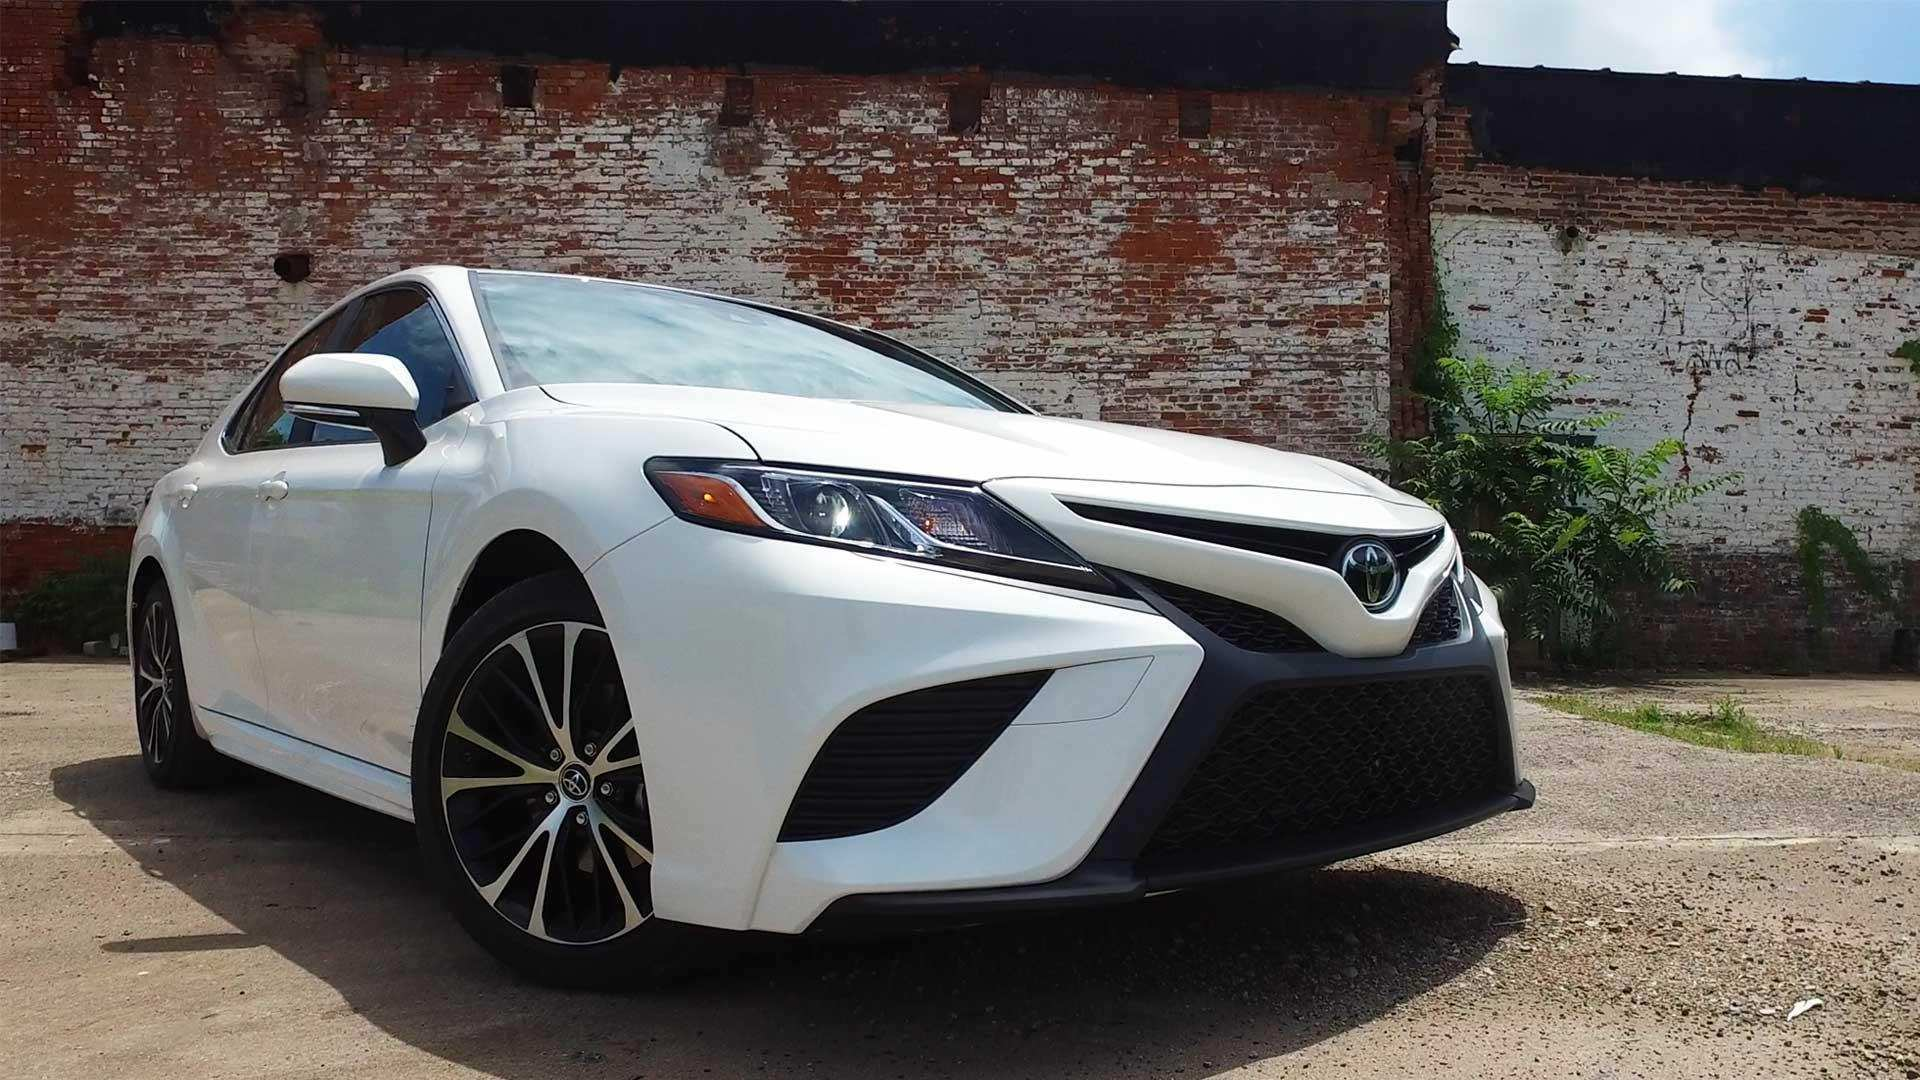 50 All New 2019 Toyota Camry Se Hybrid Research New